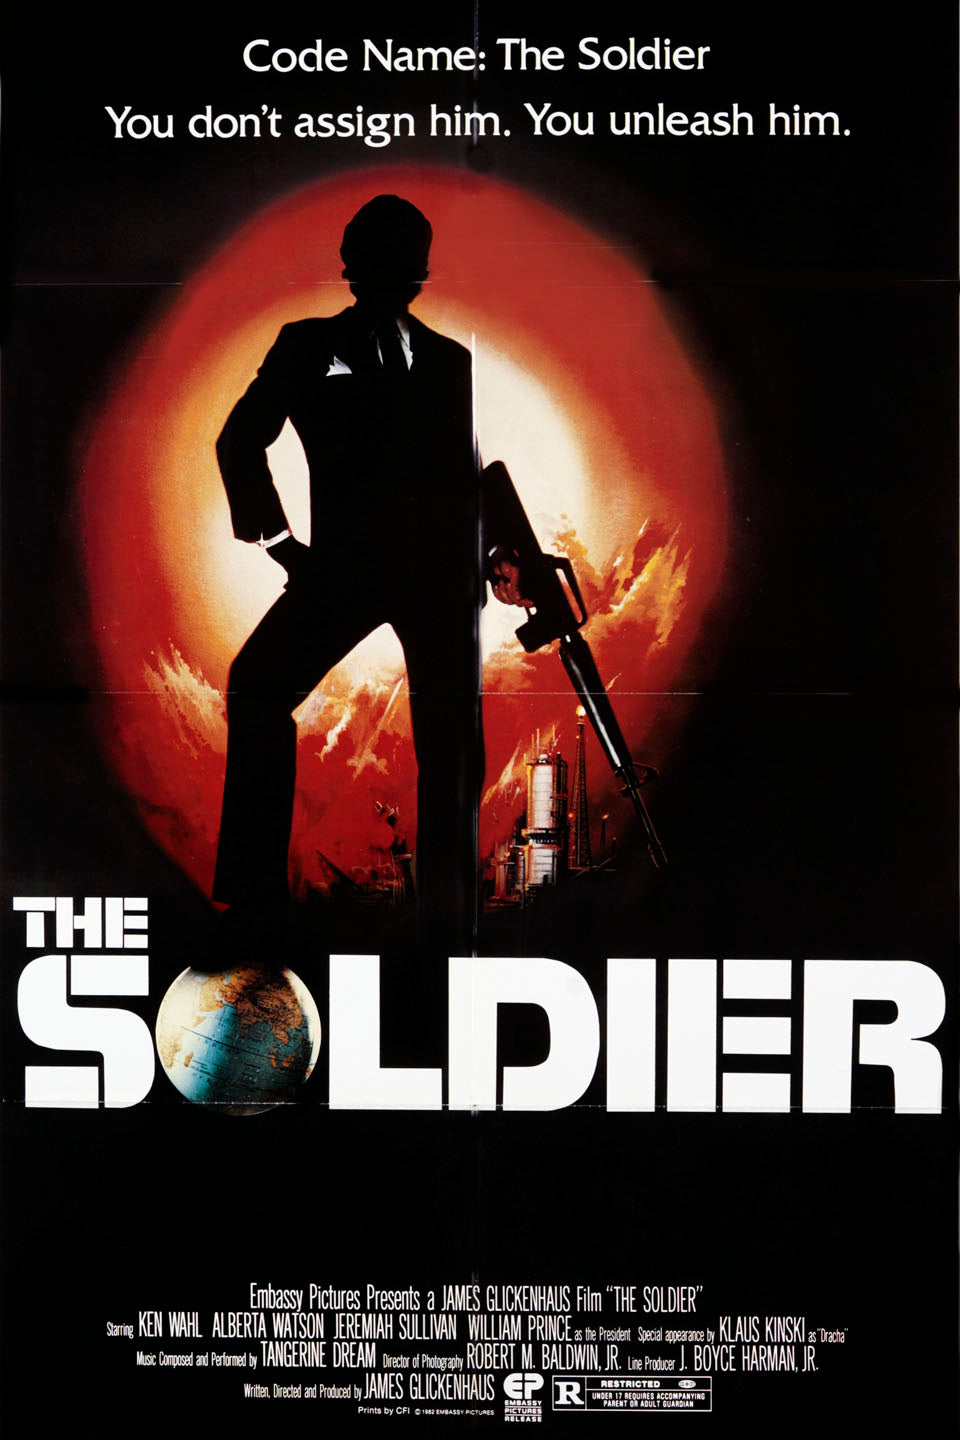 The Soldier Dvd (1982) Rarefliks.com